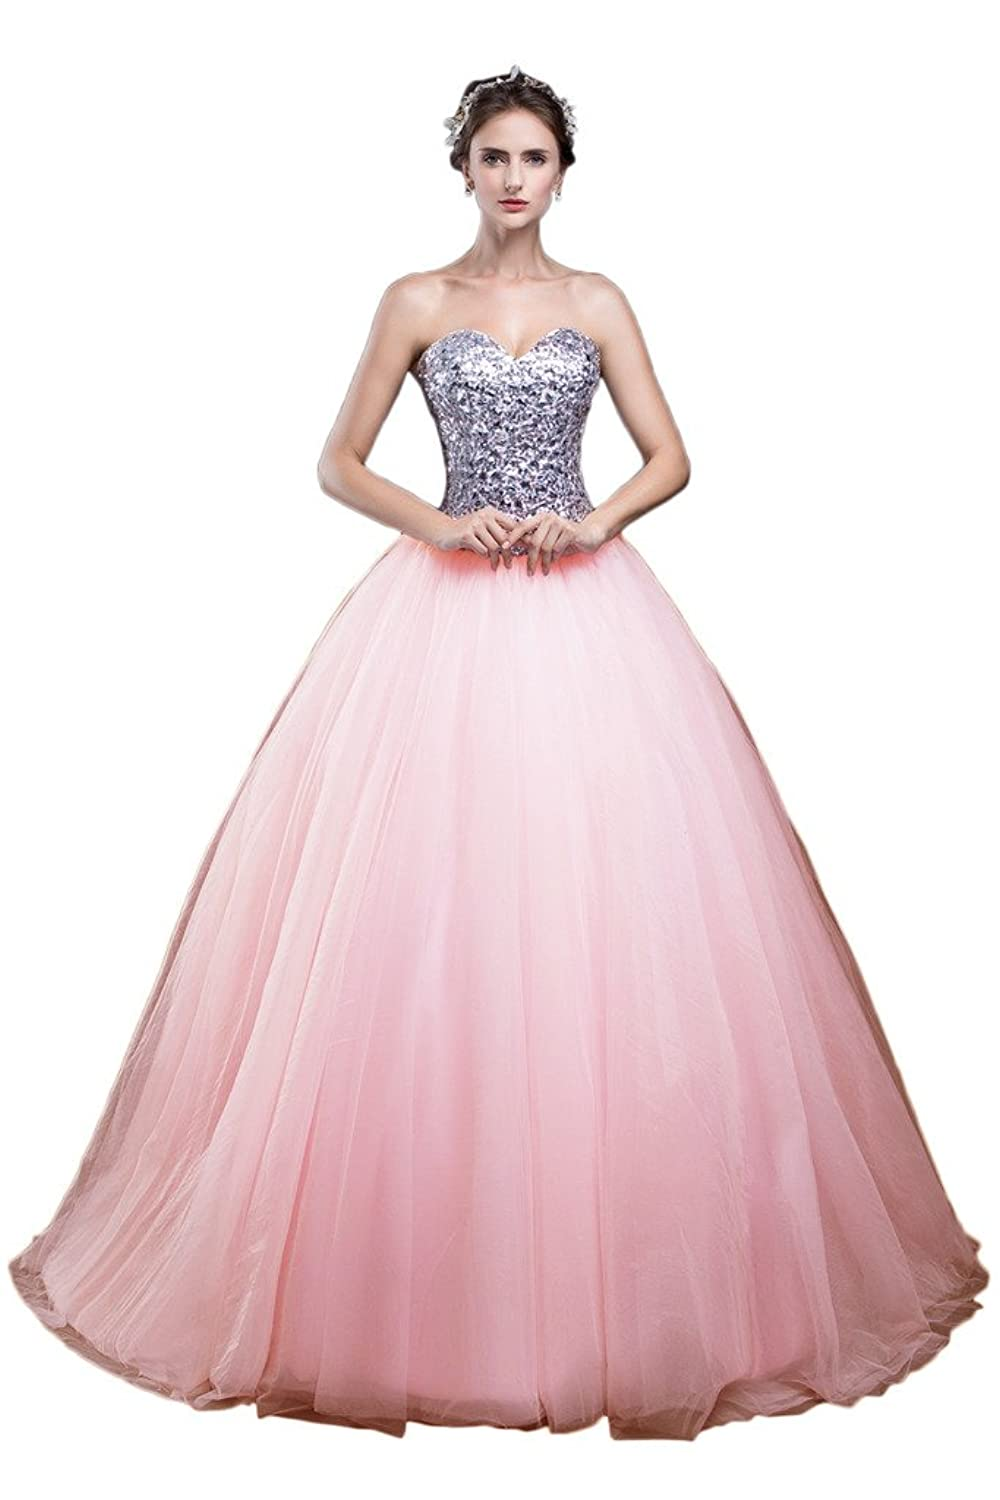 Gorgeous Bride Long Ball Gown Sweetheart Sequins Prom Quinceanera Evening Dress